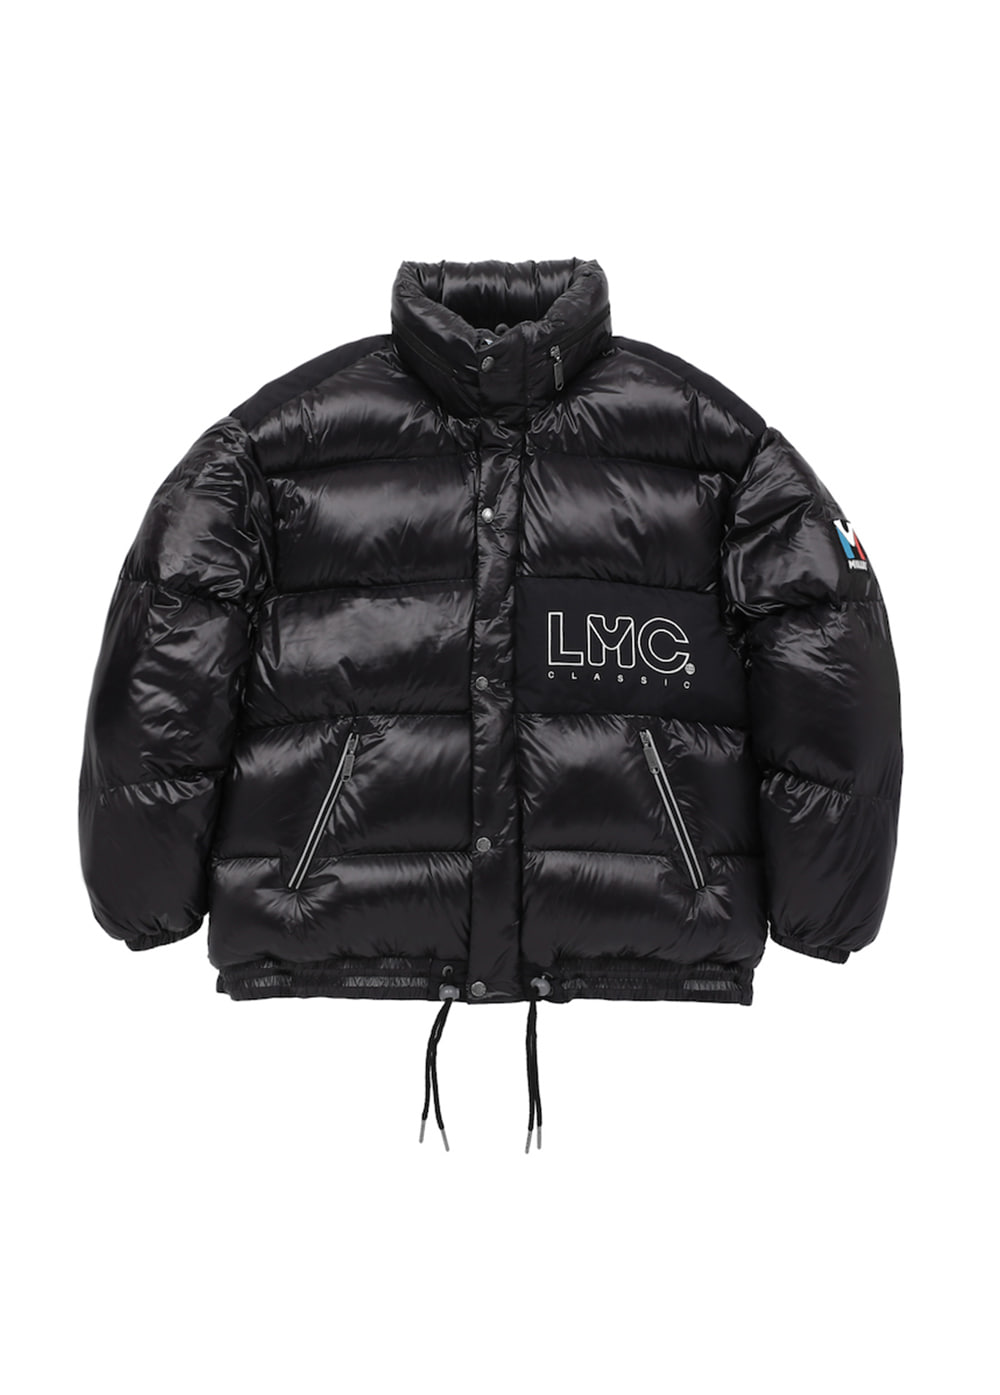 MILLET x LMC RETRO DOUDOUNE DOWN JACKET black